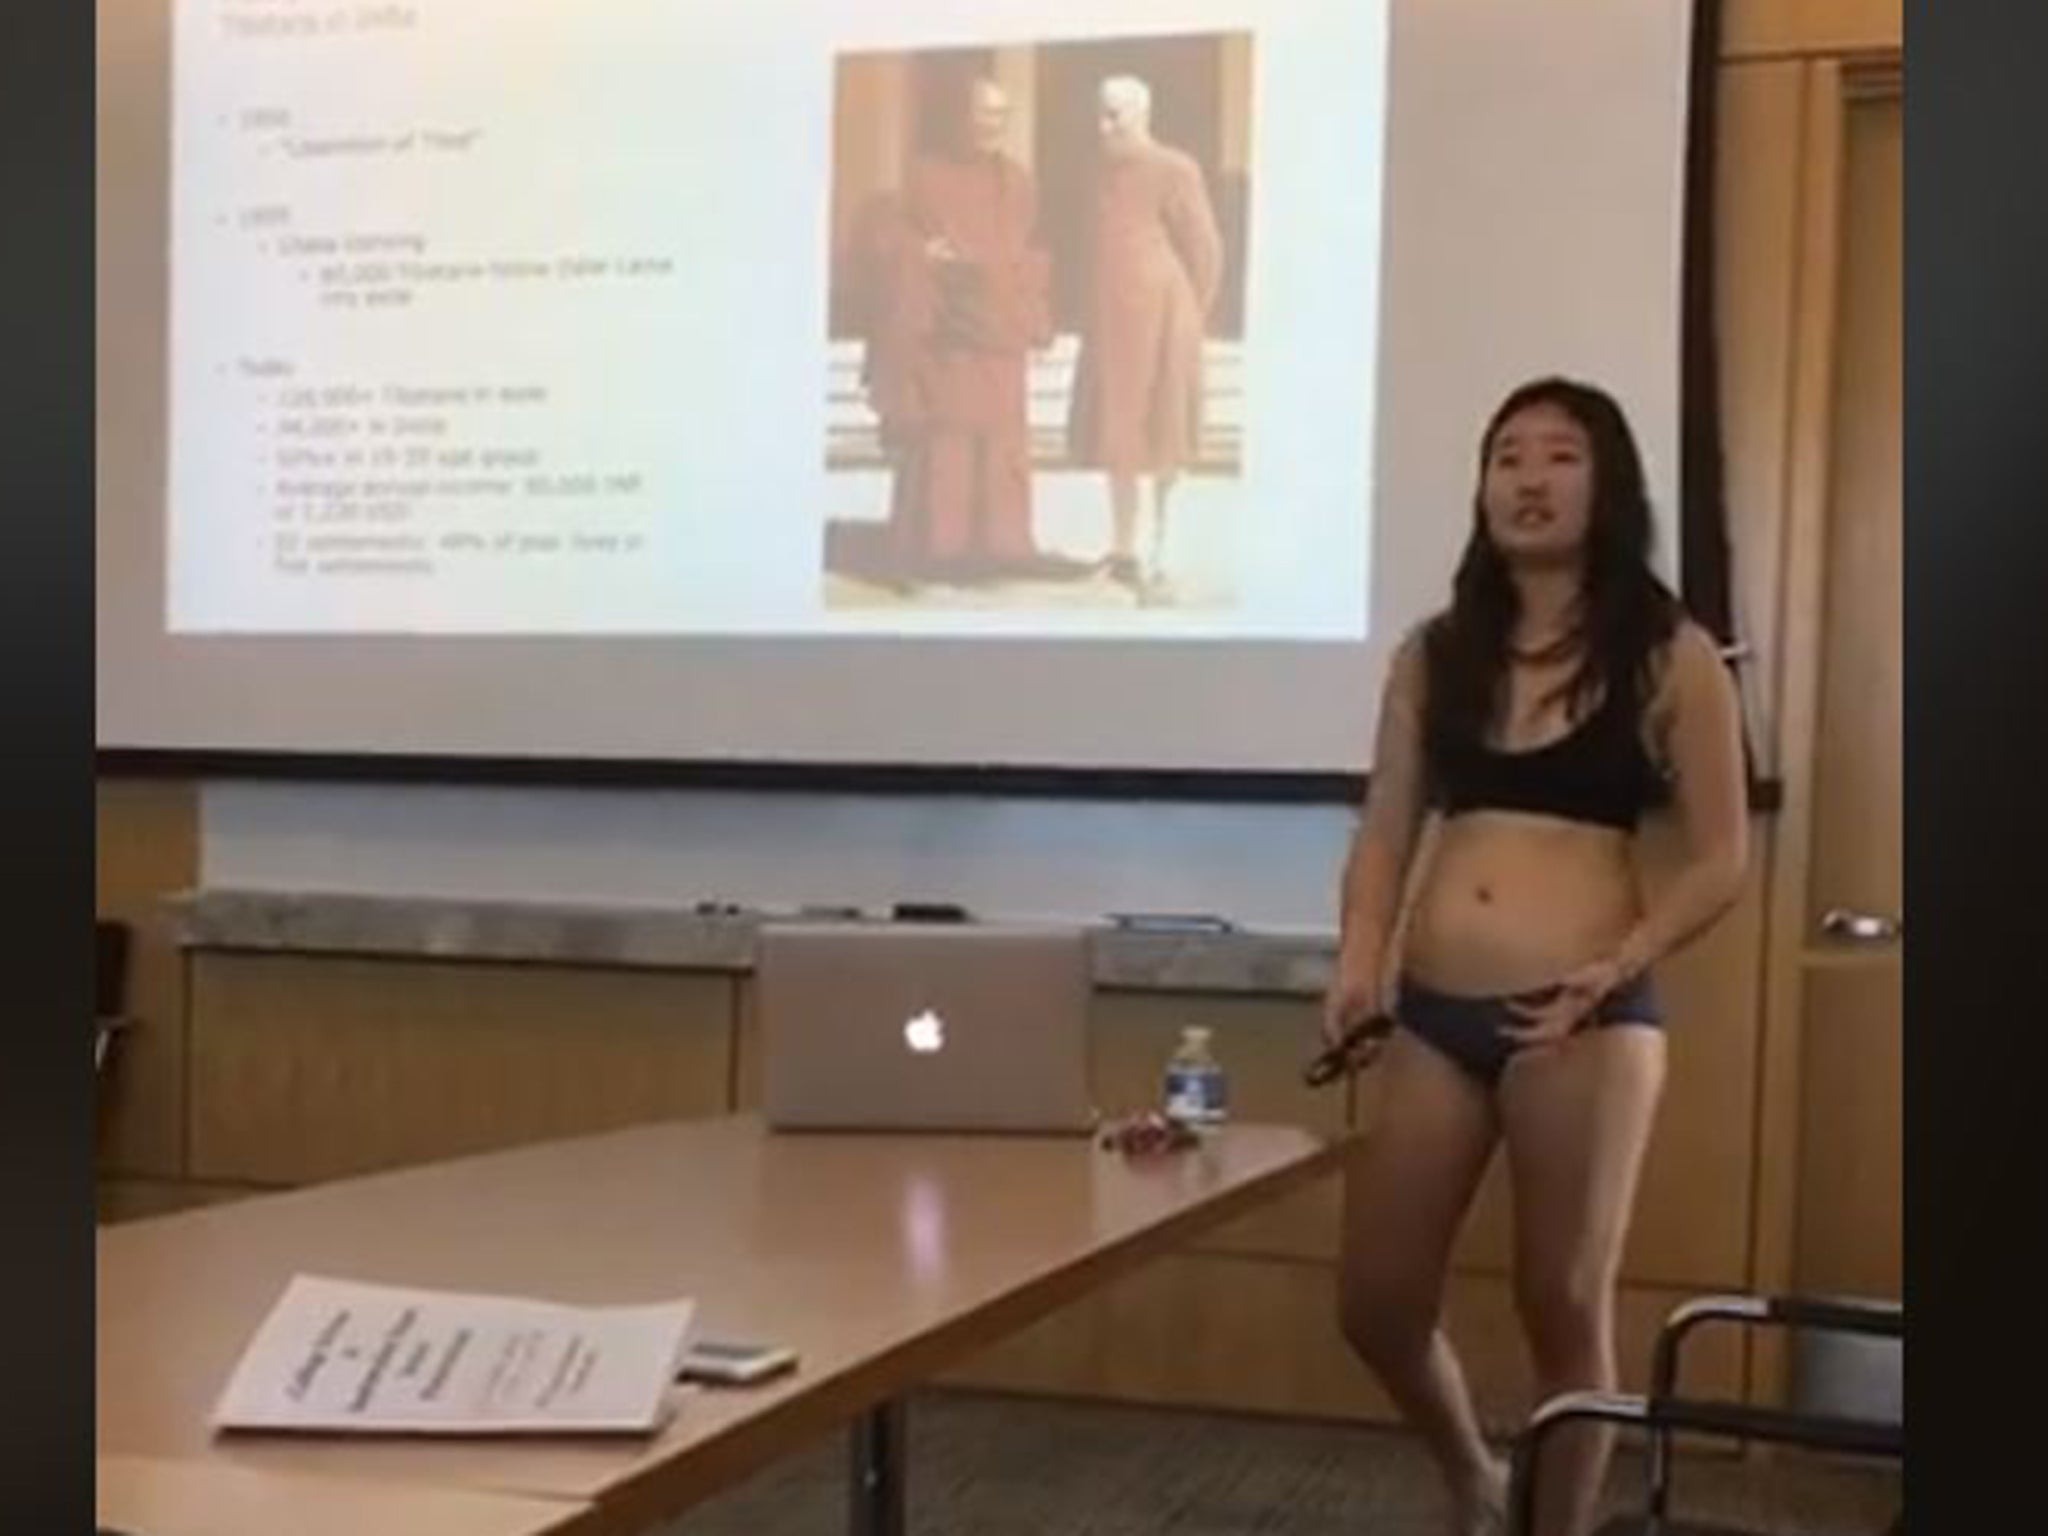 6133dabb7 Student presents thesis in underwear after professor says her  shorts are  too short